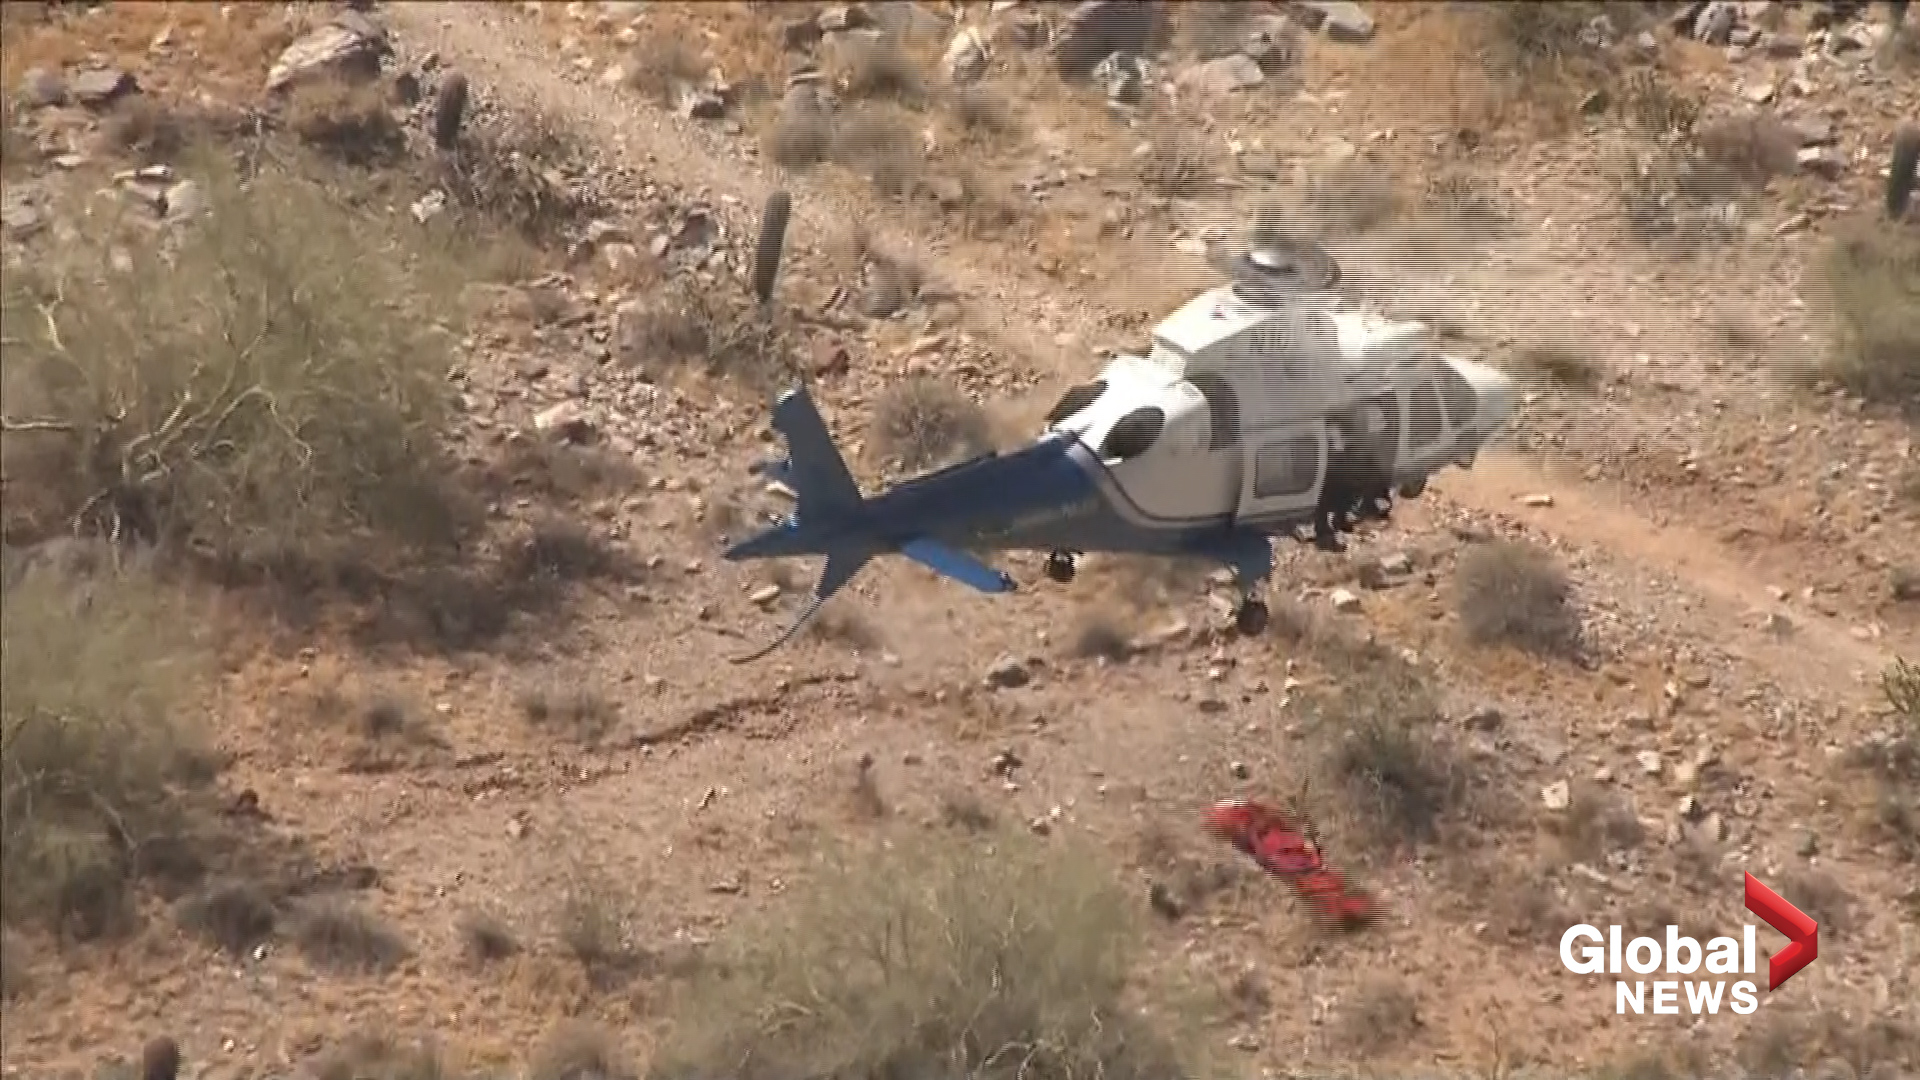 Woman in stable condition after United States mountain rescue spins out of control